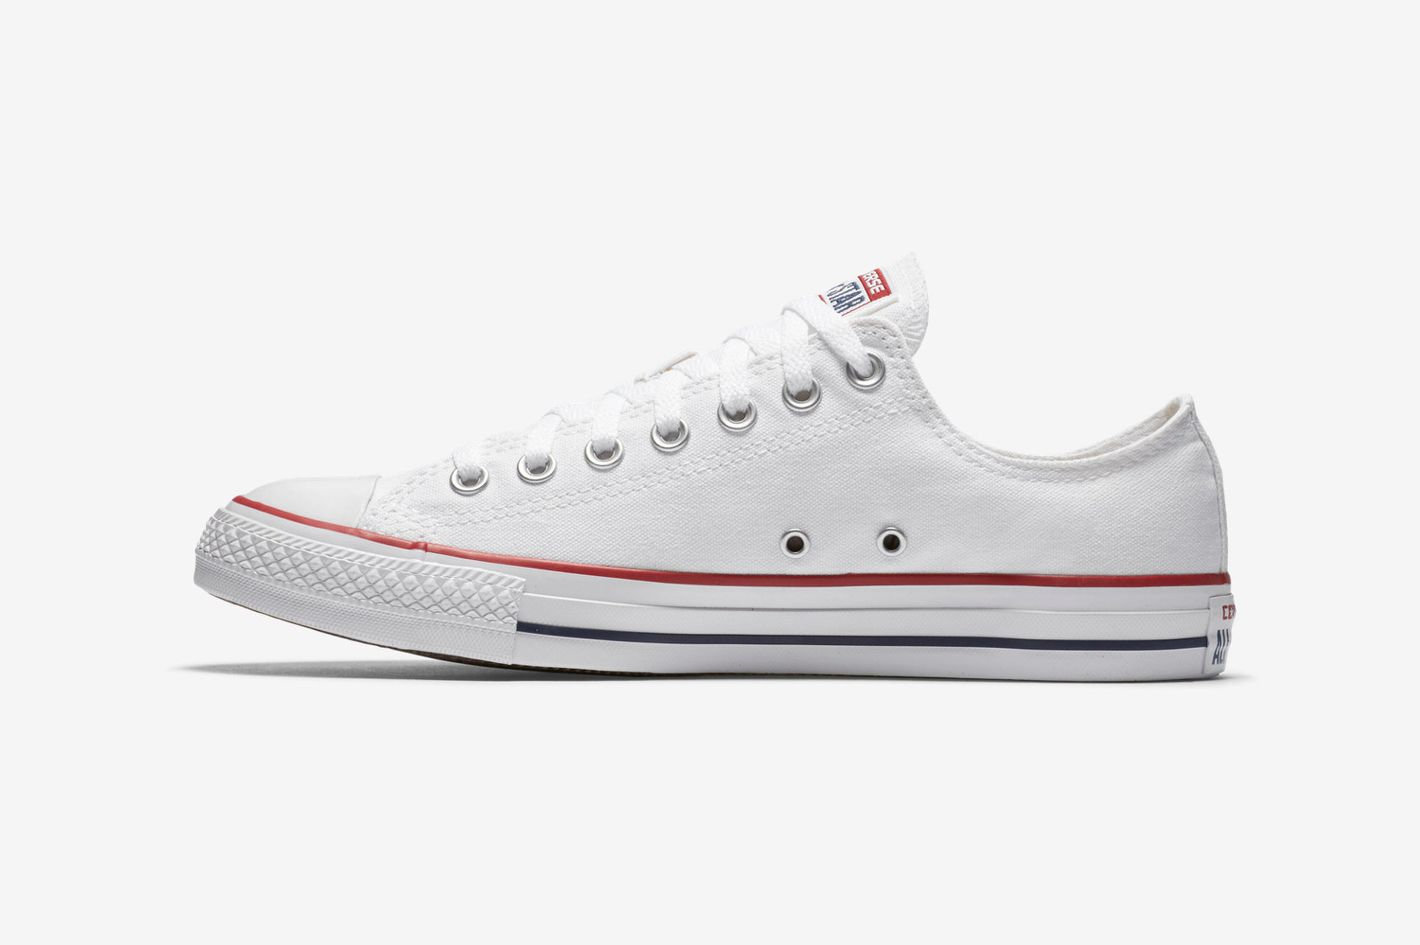 93a8ac4f208129 Converse Chuck Taylor All Star Low Top